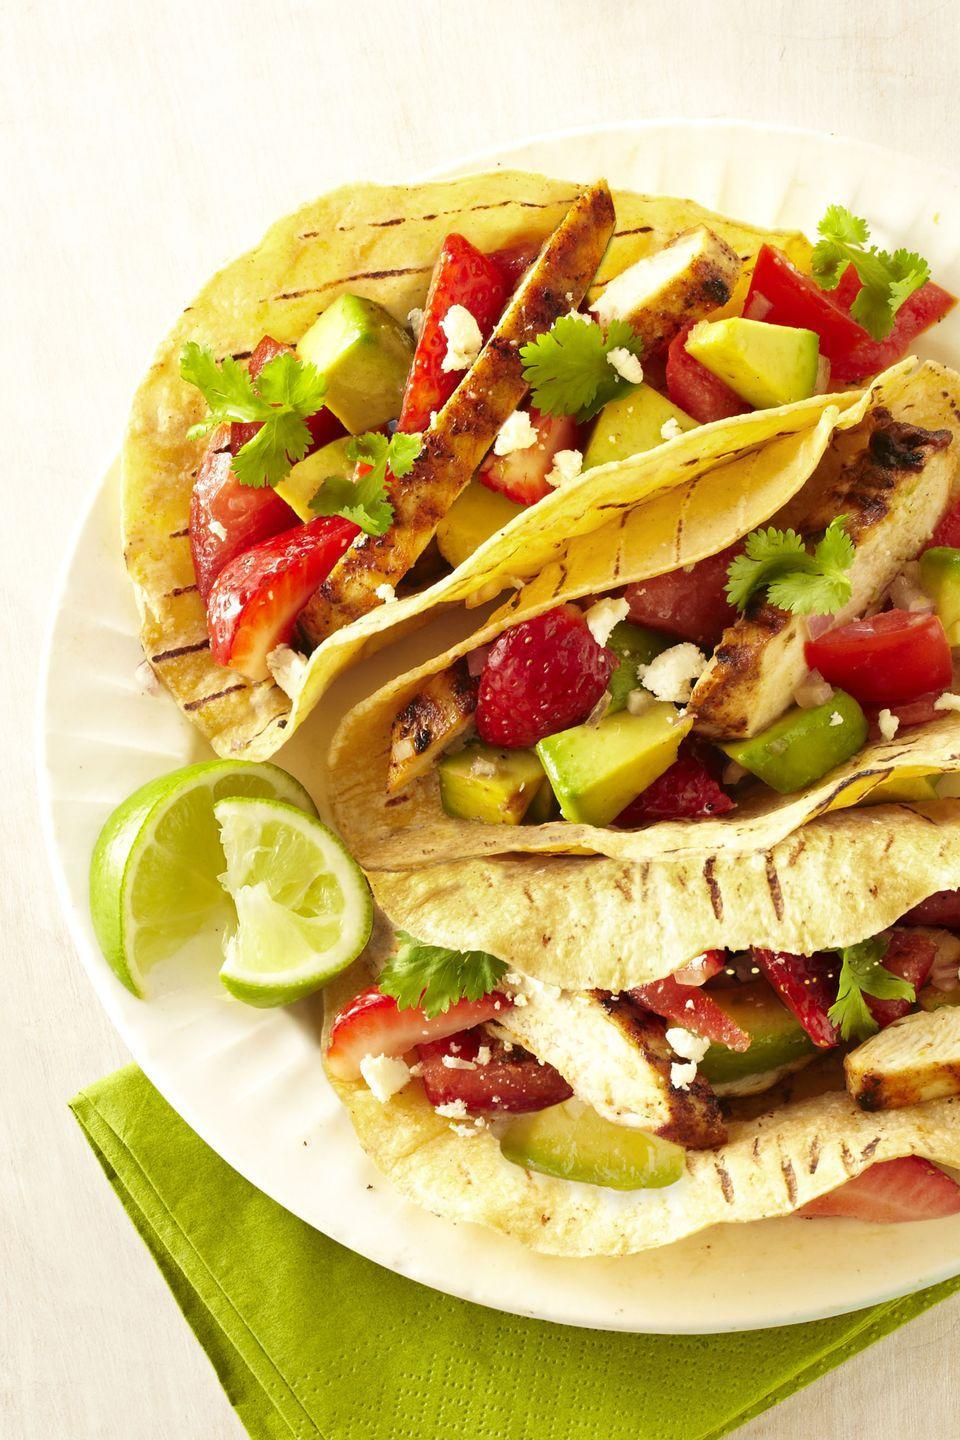 """<p>Sweet strawberries and creamy avocado make a luscious yet light topping for these chicken tacos.</p><p><em><a href=""""https://www.goodhousekeeping.com/food-recipes/a14533/grilled-chicken-tacos-strawberry-salsa-recipe-ghk0713/"""" rel=""""nofollow noopener"""" target=""""_blank"""" data-ylk=""""slk:Get the recipe for Grilled Chicken Tacos with Strawberry Salsa »"""" class=""""link rapid-noclick-resp"""">Get the recipe for Grilled Chicken Tacos with Strawberry Salsa »</a></em><strong><br></strong></p><p><strong>RELATED:</strong> <a href=""""https://www.goodhousekeeping.com/food-recipes/g1137/fresh-strawberry-recipes/"""" rel=""""nofollow noopener"""" target=""""_blank"""" data-ylk=""""slk:20 Delicious Strawberry Recipes to Make This Spring and Summer"""" class=""""link rapid-noclick-resp"""">20 Delicious Strawberry Recipes to Make This Spring and Summer</a></p>"""